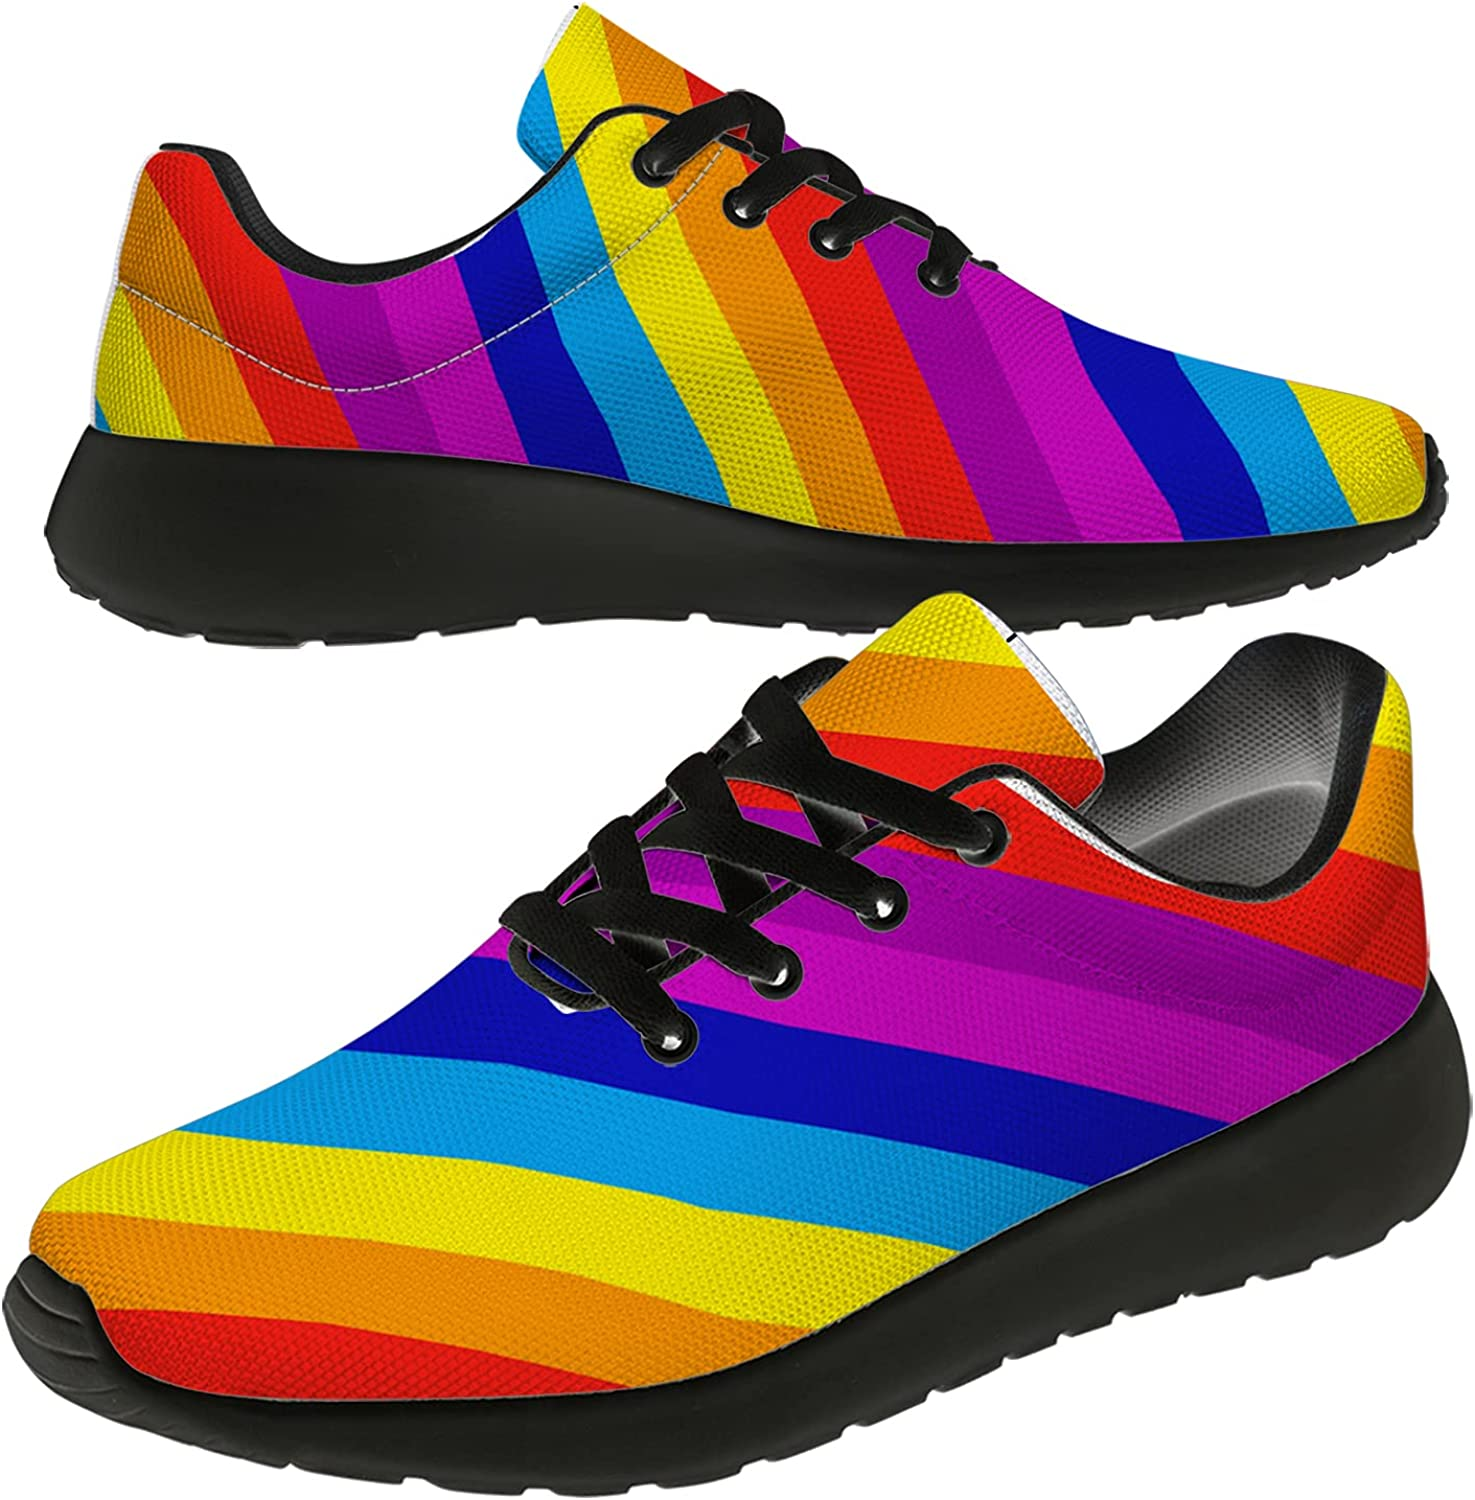 Uminder Women's Men's Don't miss the campaign Running Breatha Sneakers Lightweight Shoes Boston Mall